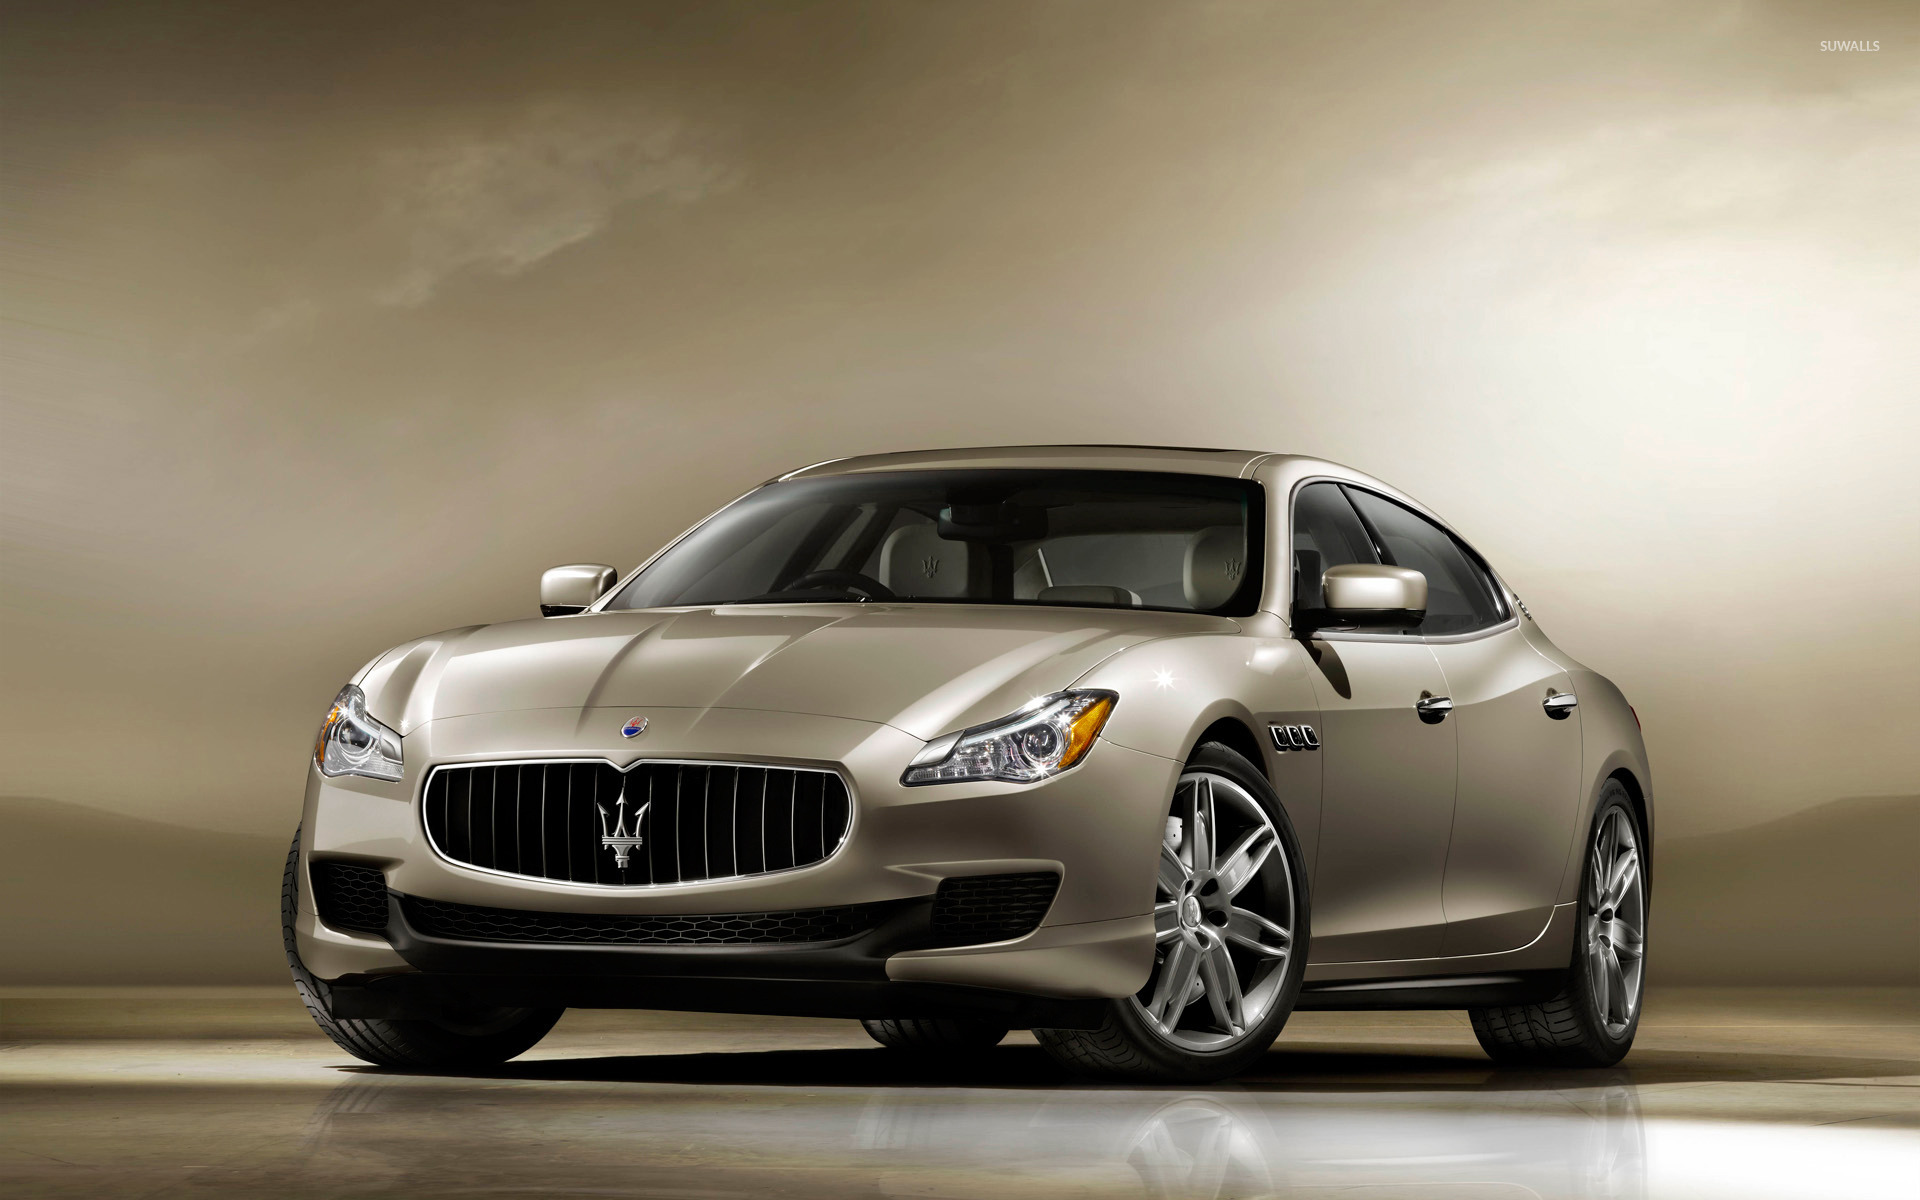 2013 maserati quattroporte gallery. Black Bedroom Furniture Sets. Home Design Ideas